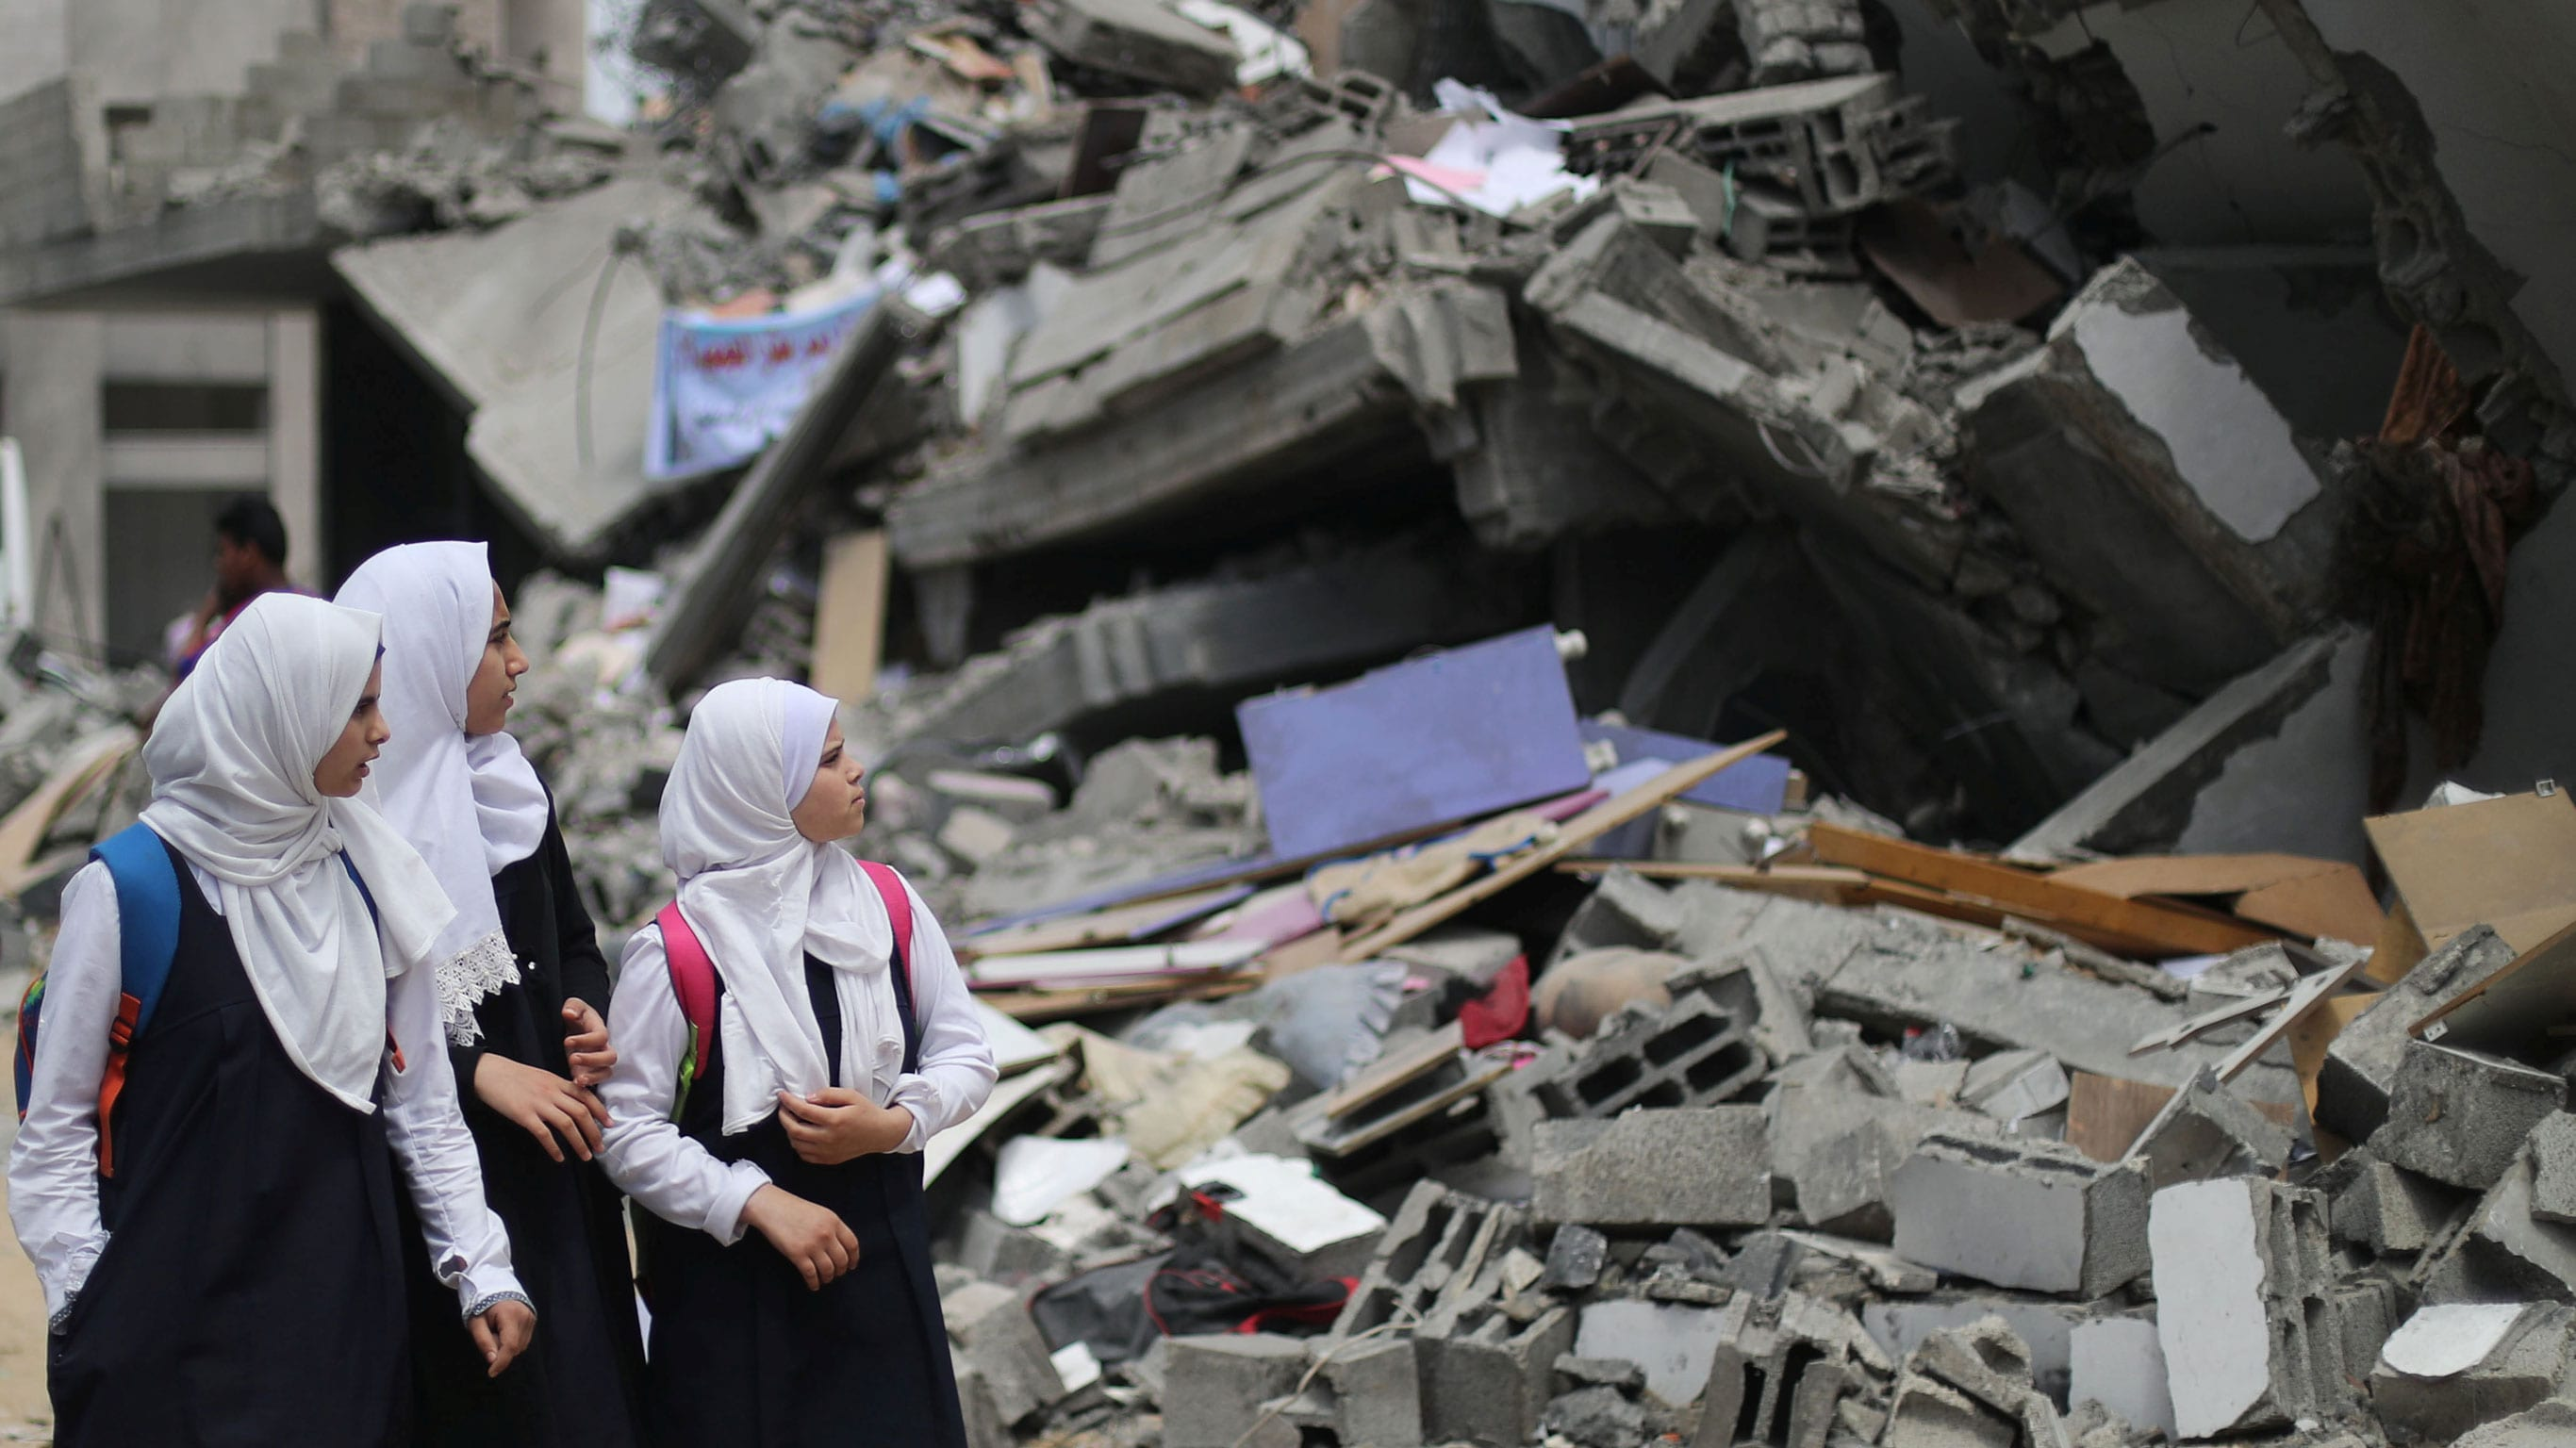 Palestinian students look at a building that was destroyed by Israeli airstrikes near their damaged school in Gaza City, Gaza, May 7, 2019. (Photo: Mohammed Salem / Reuters)]